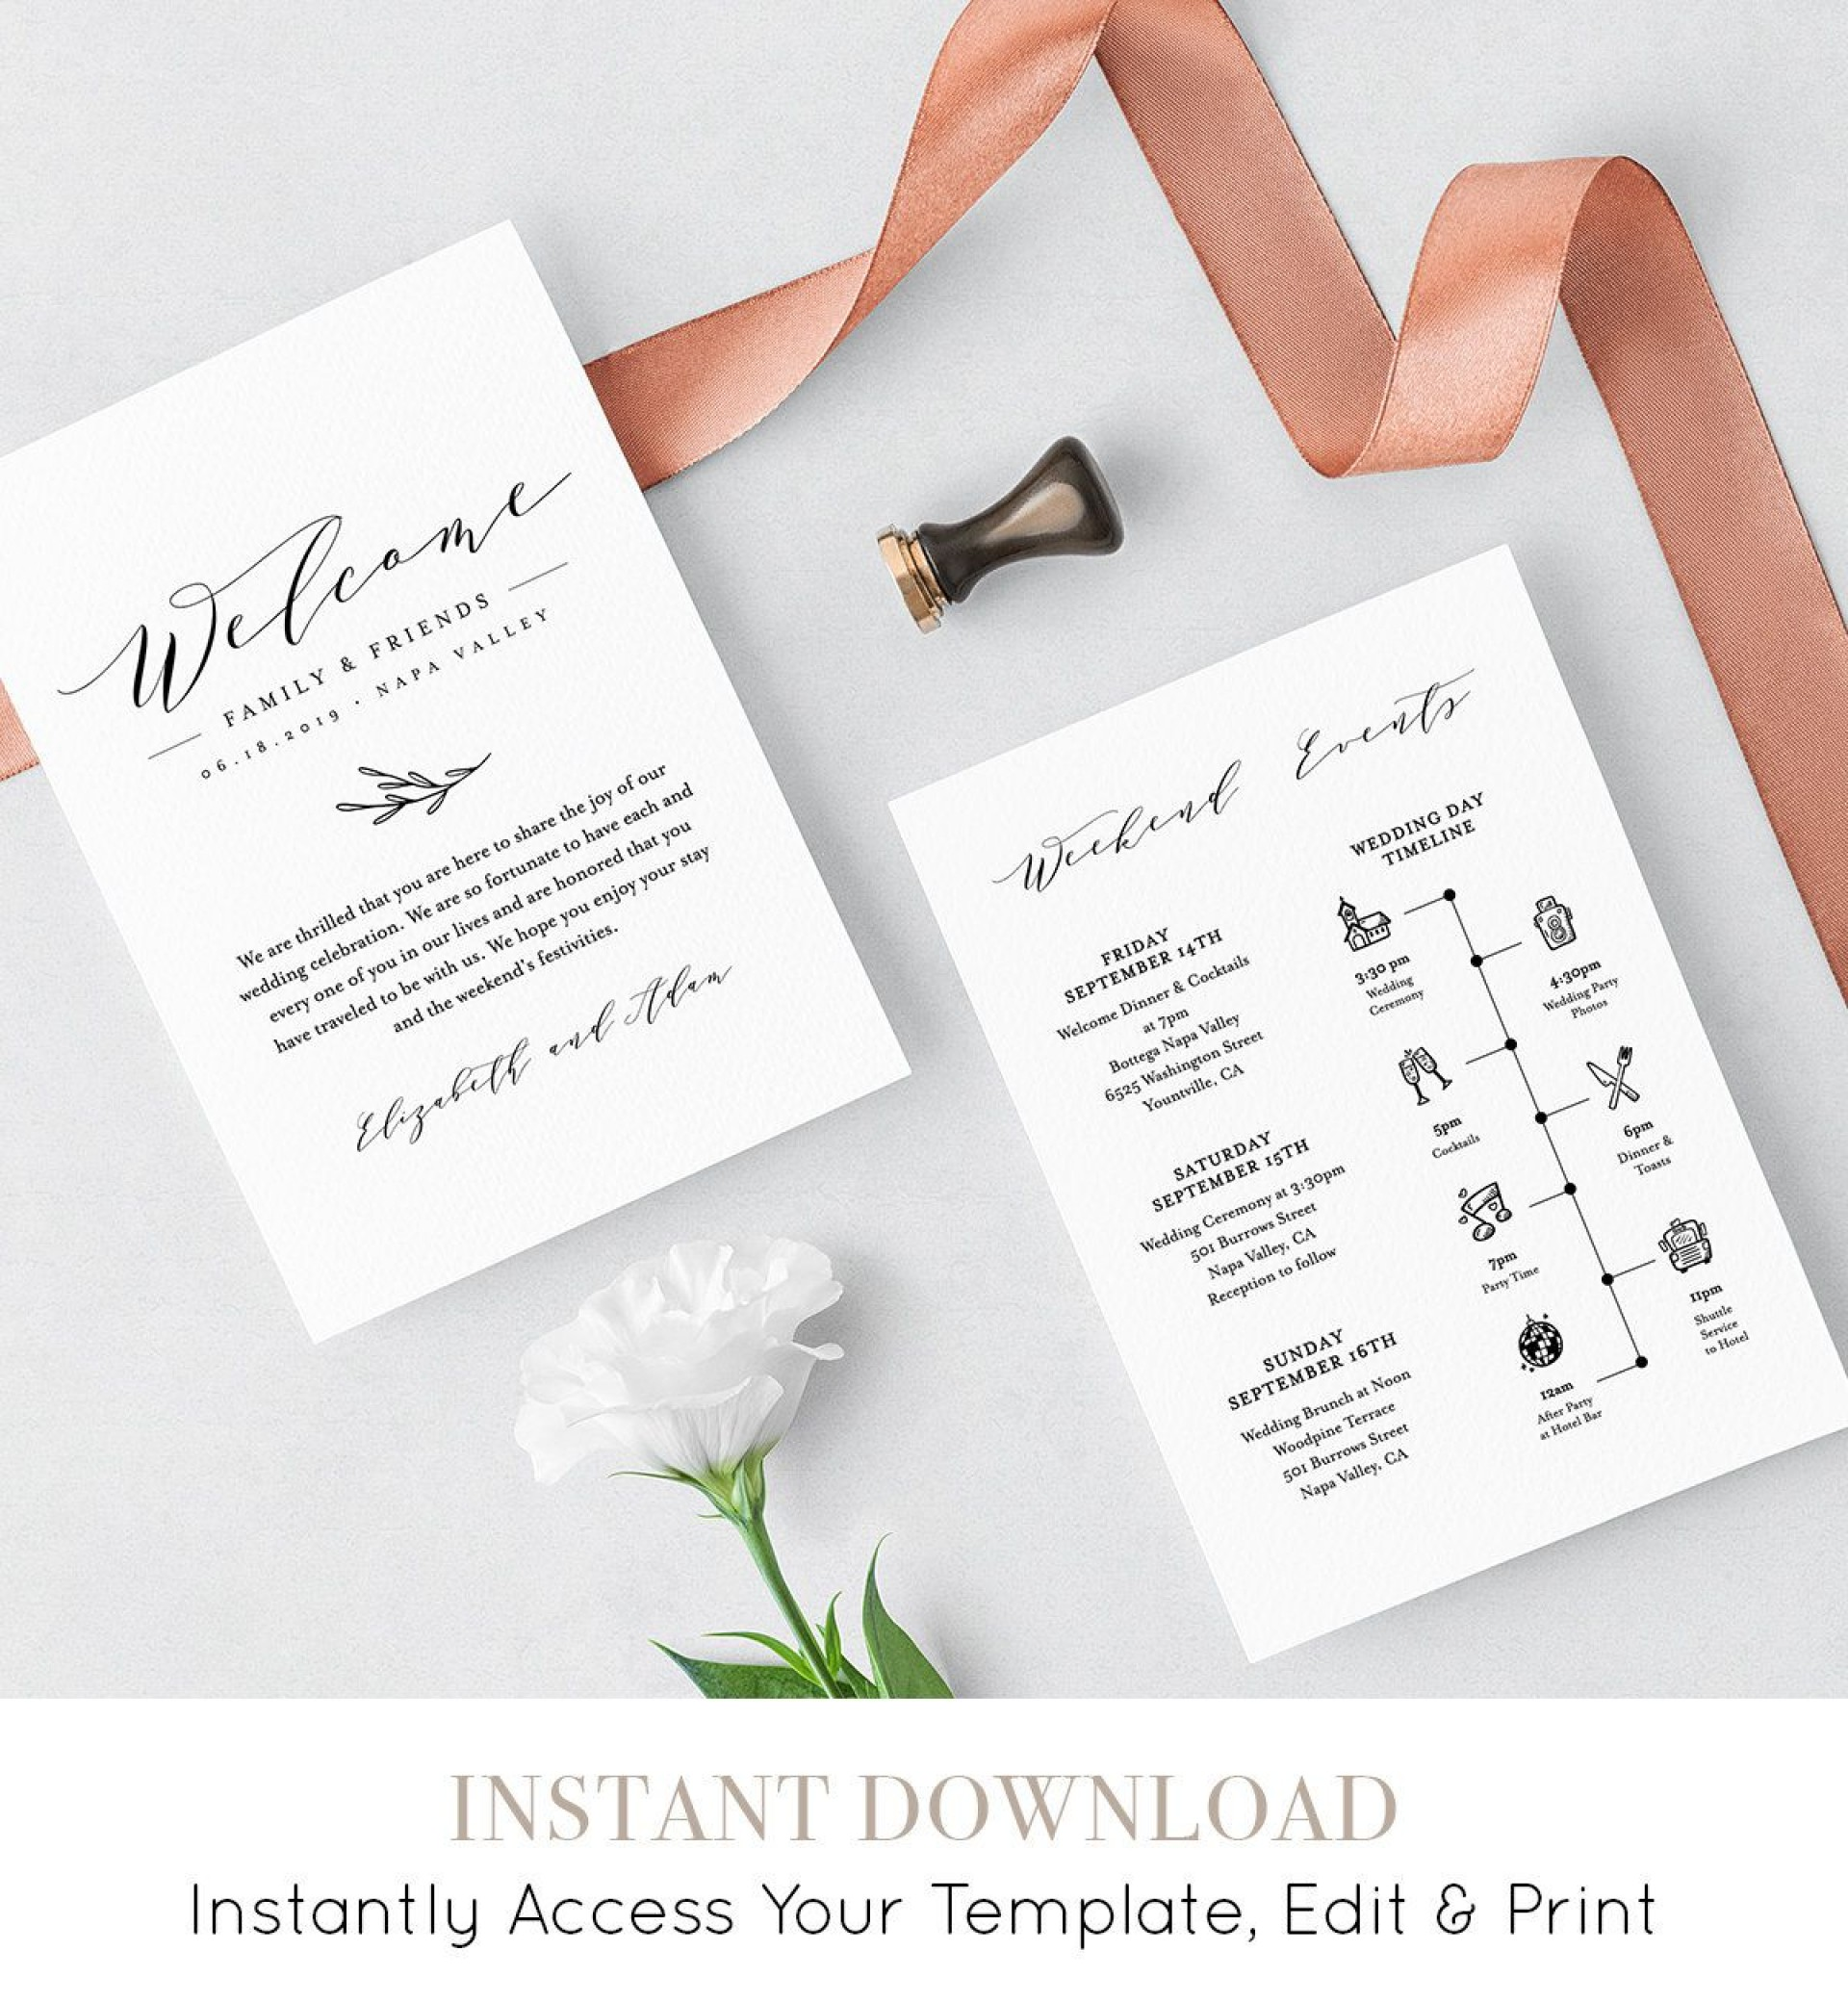 007 Fascinating Wedding Hotel Welcome Letter Template High Def 1920